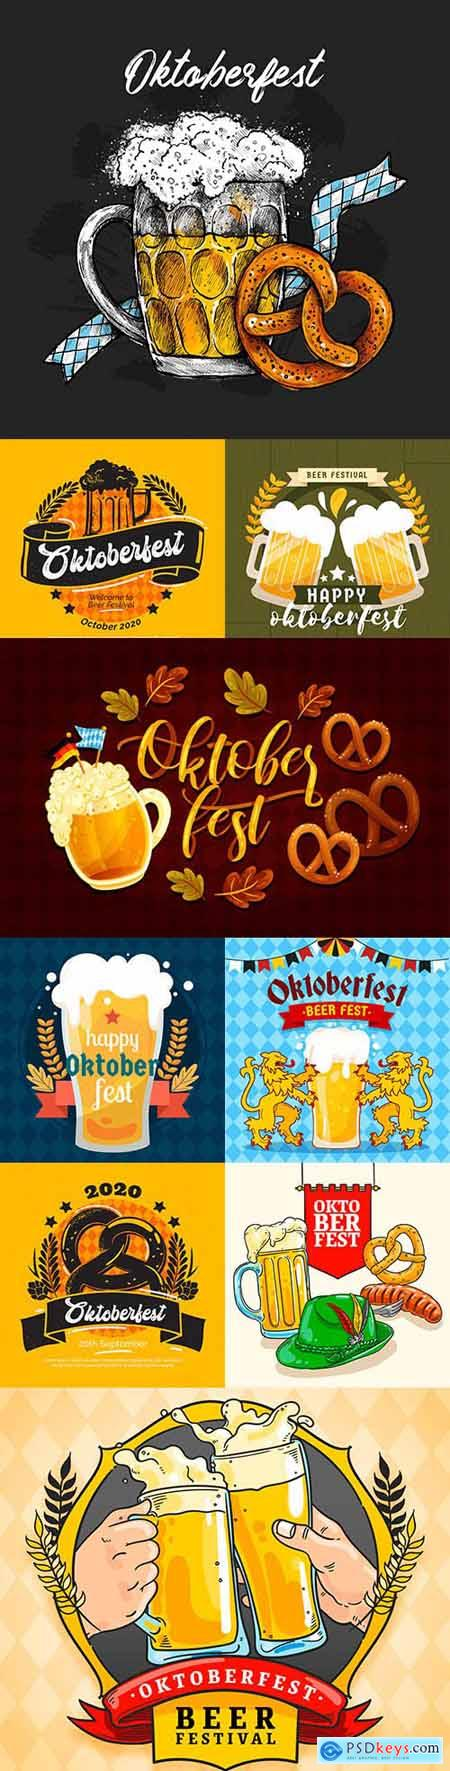 Oktoberfest Beer Festival Flat Design Illustration 5